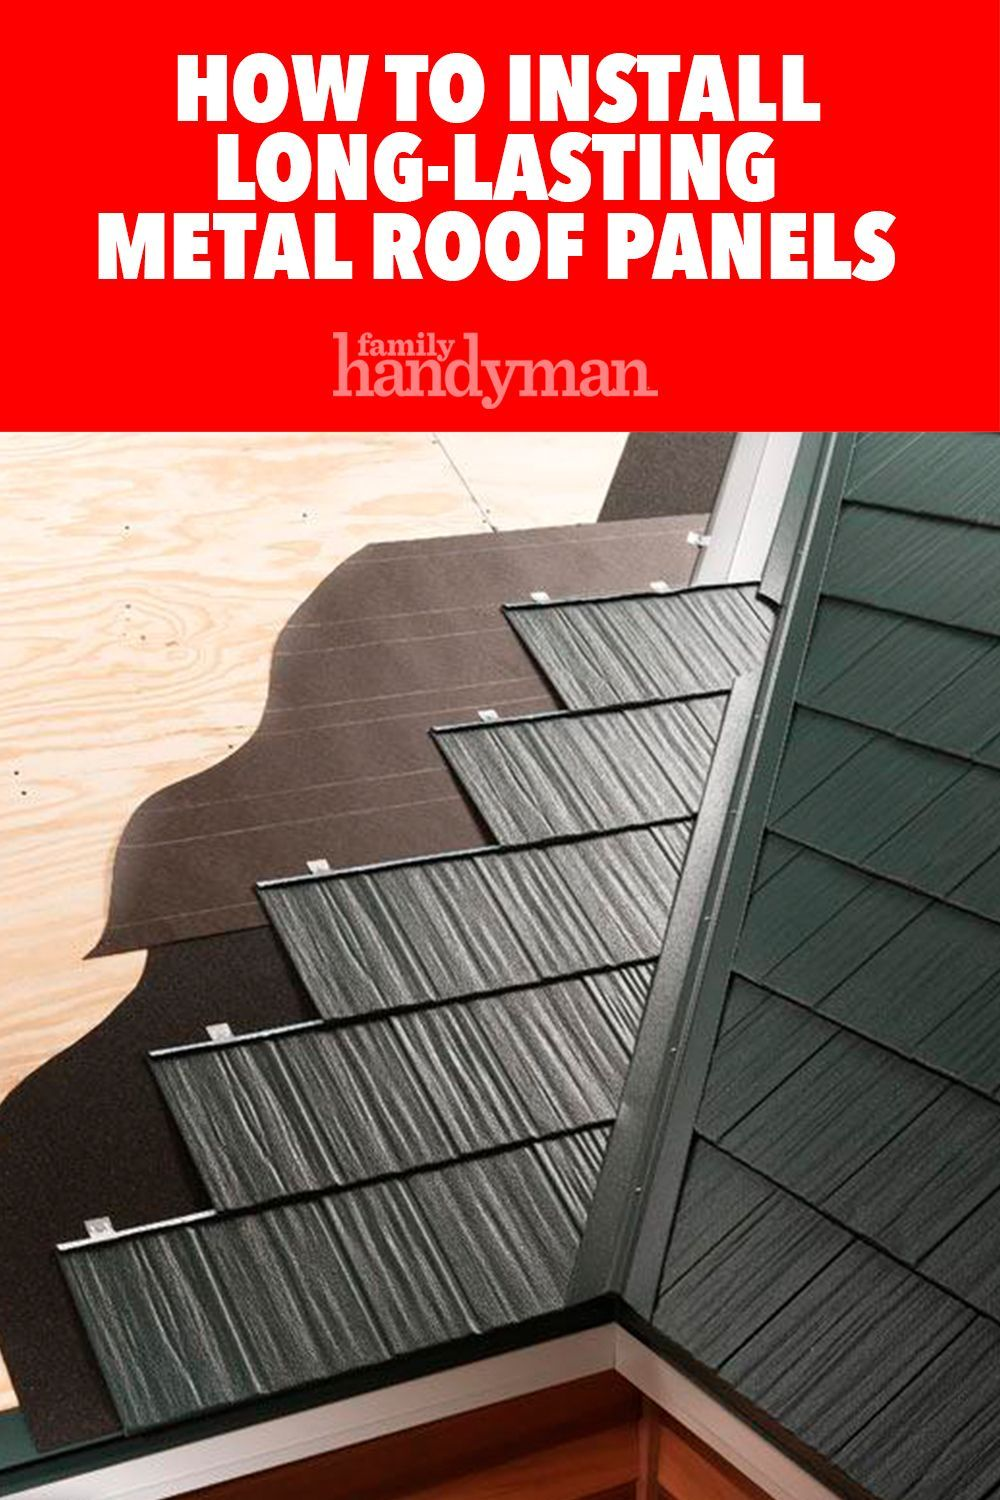 Selecting Roofing Materials for Your Home in 19  Roof panels